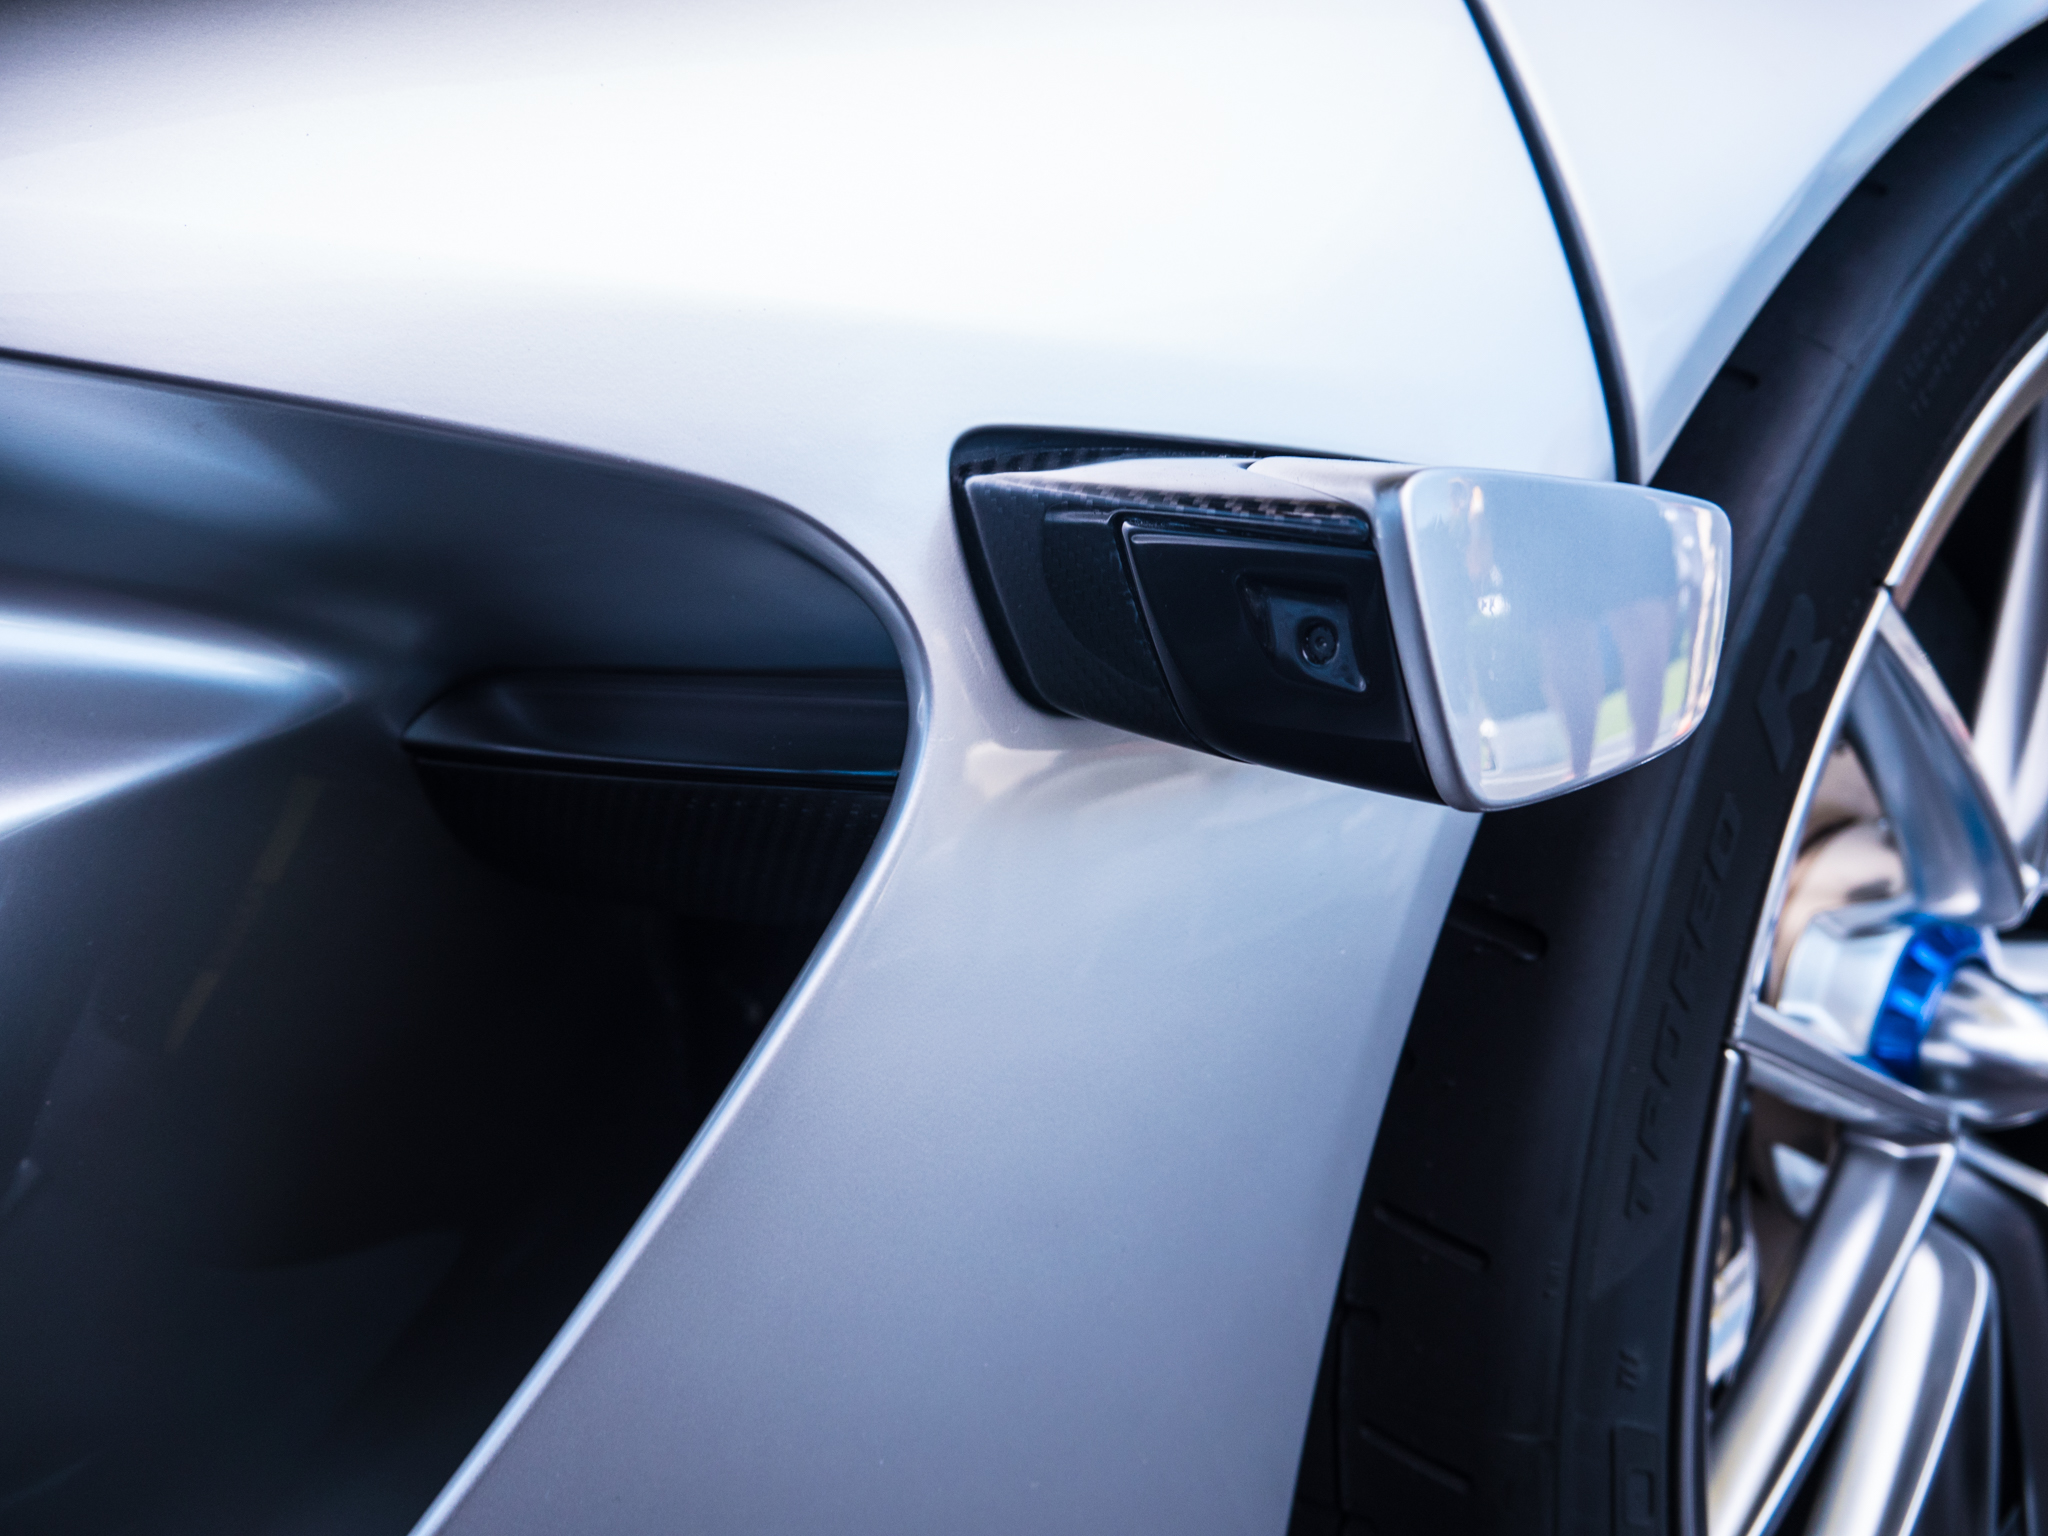 Cameras that replace side mirrors could be allowed on US